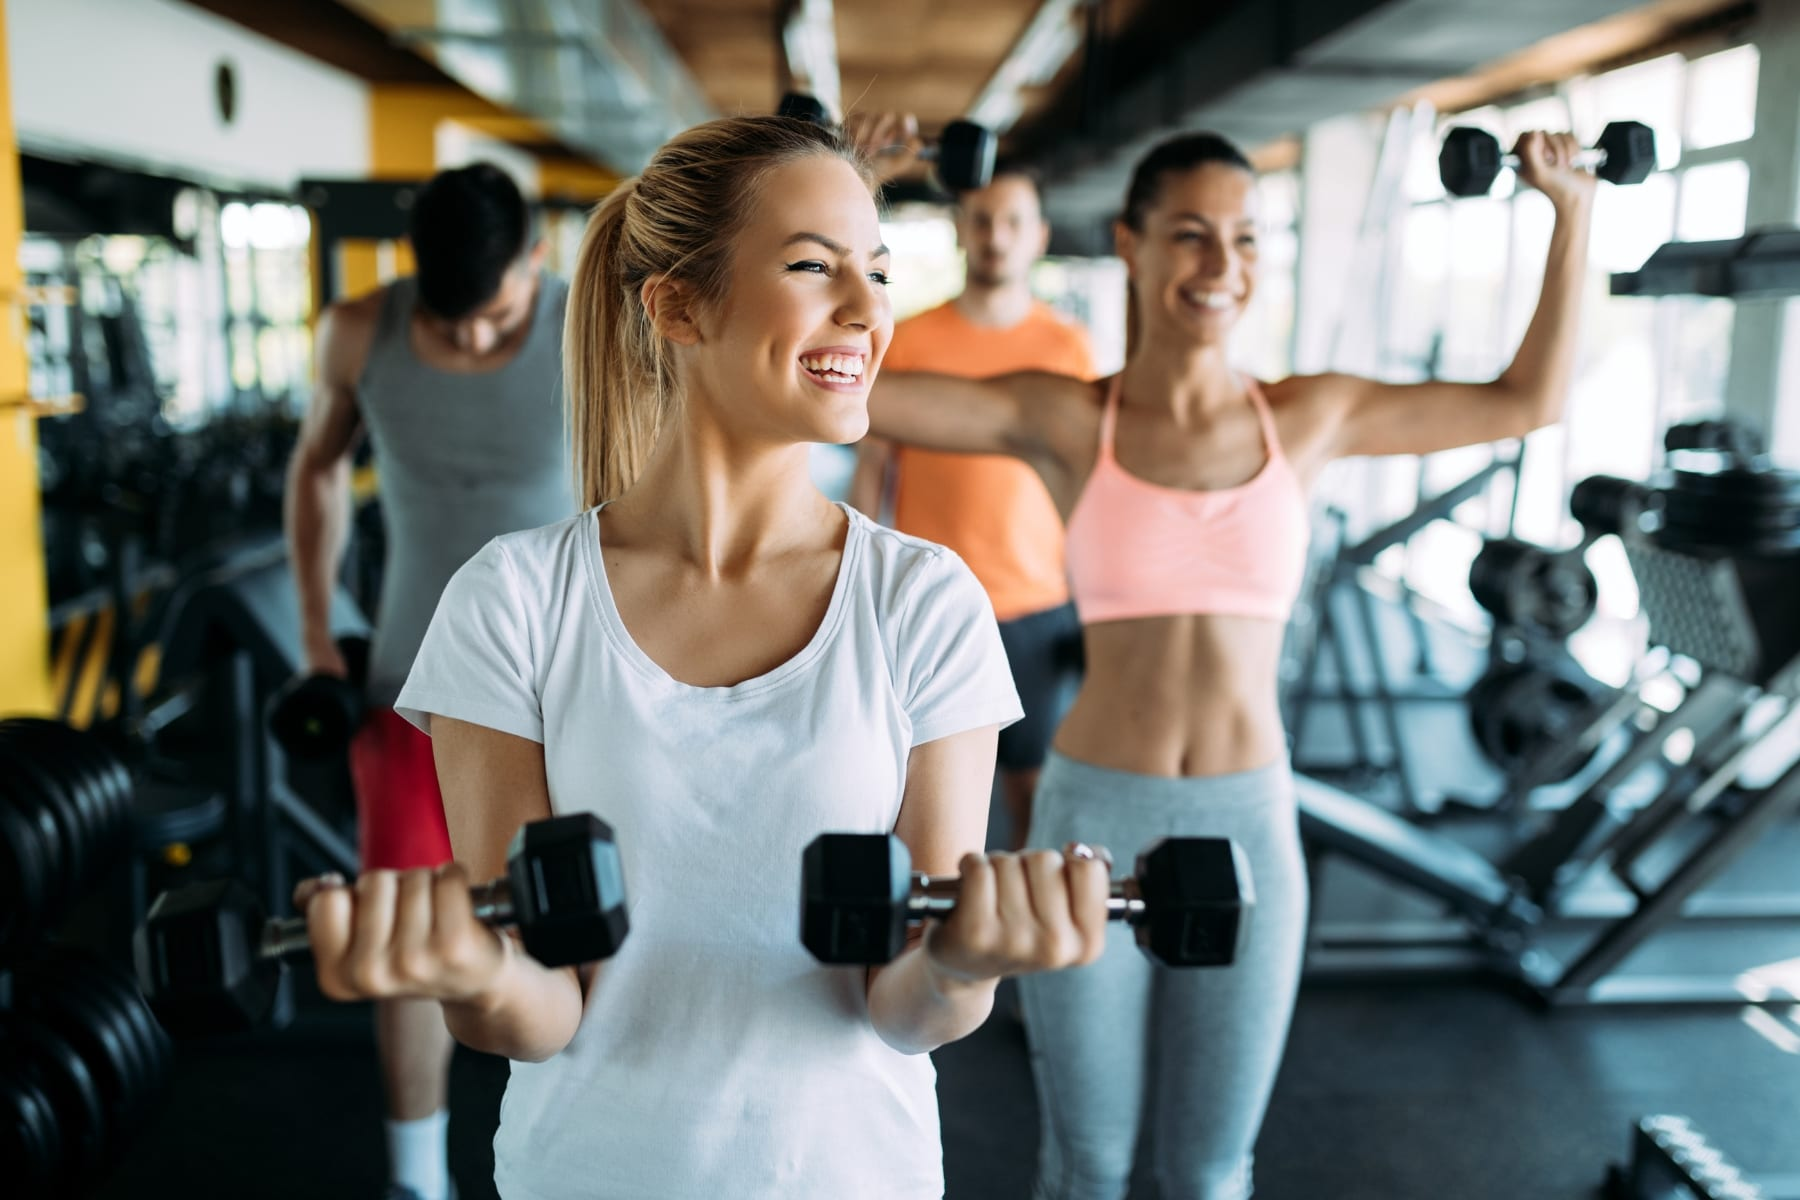 A Beginners' Guide to Starting Out at the Gym